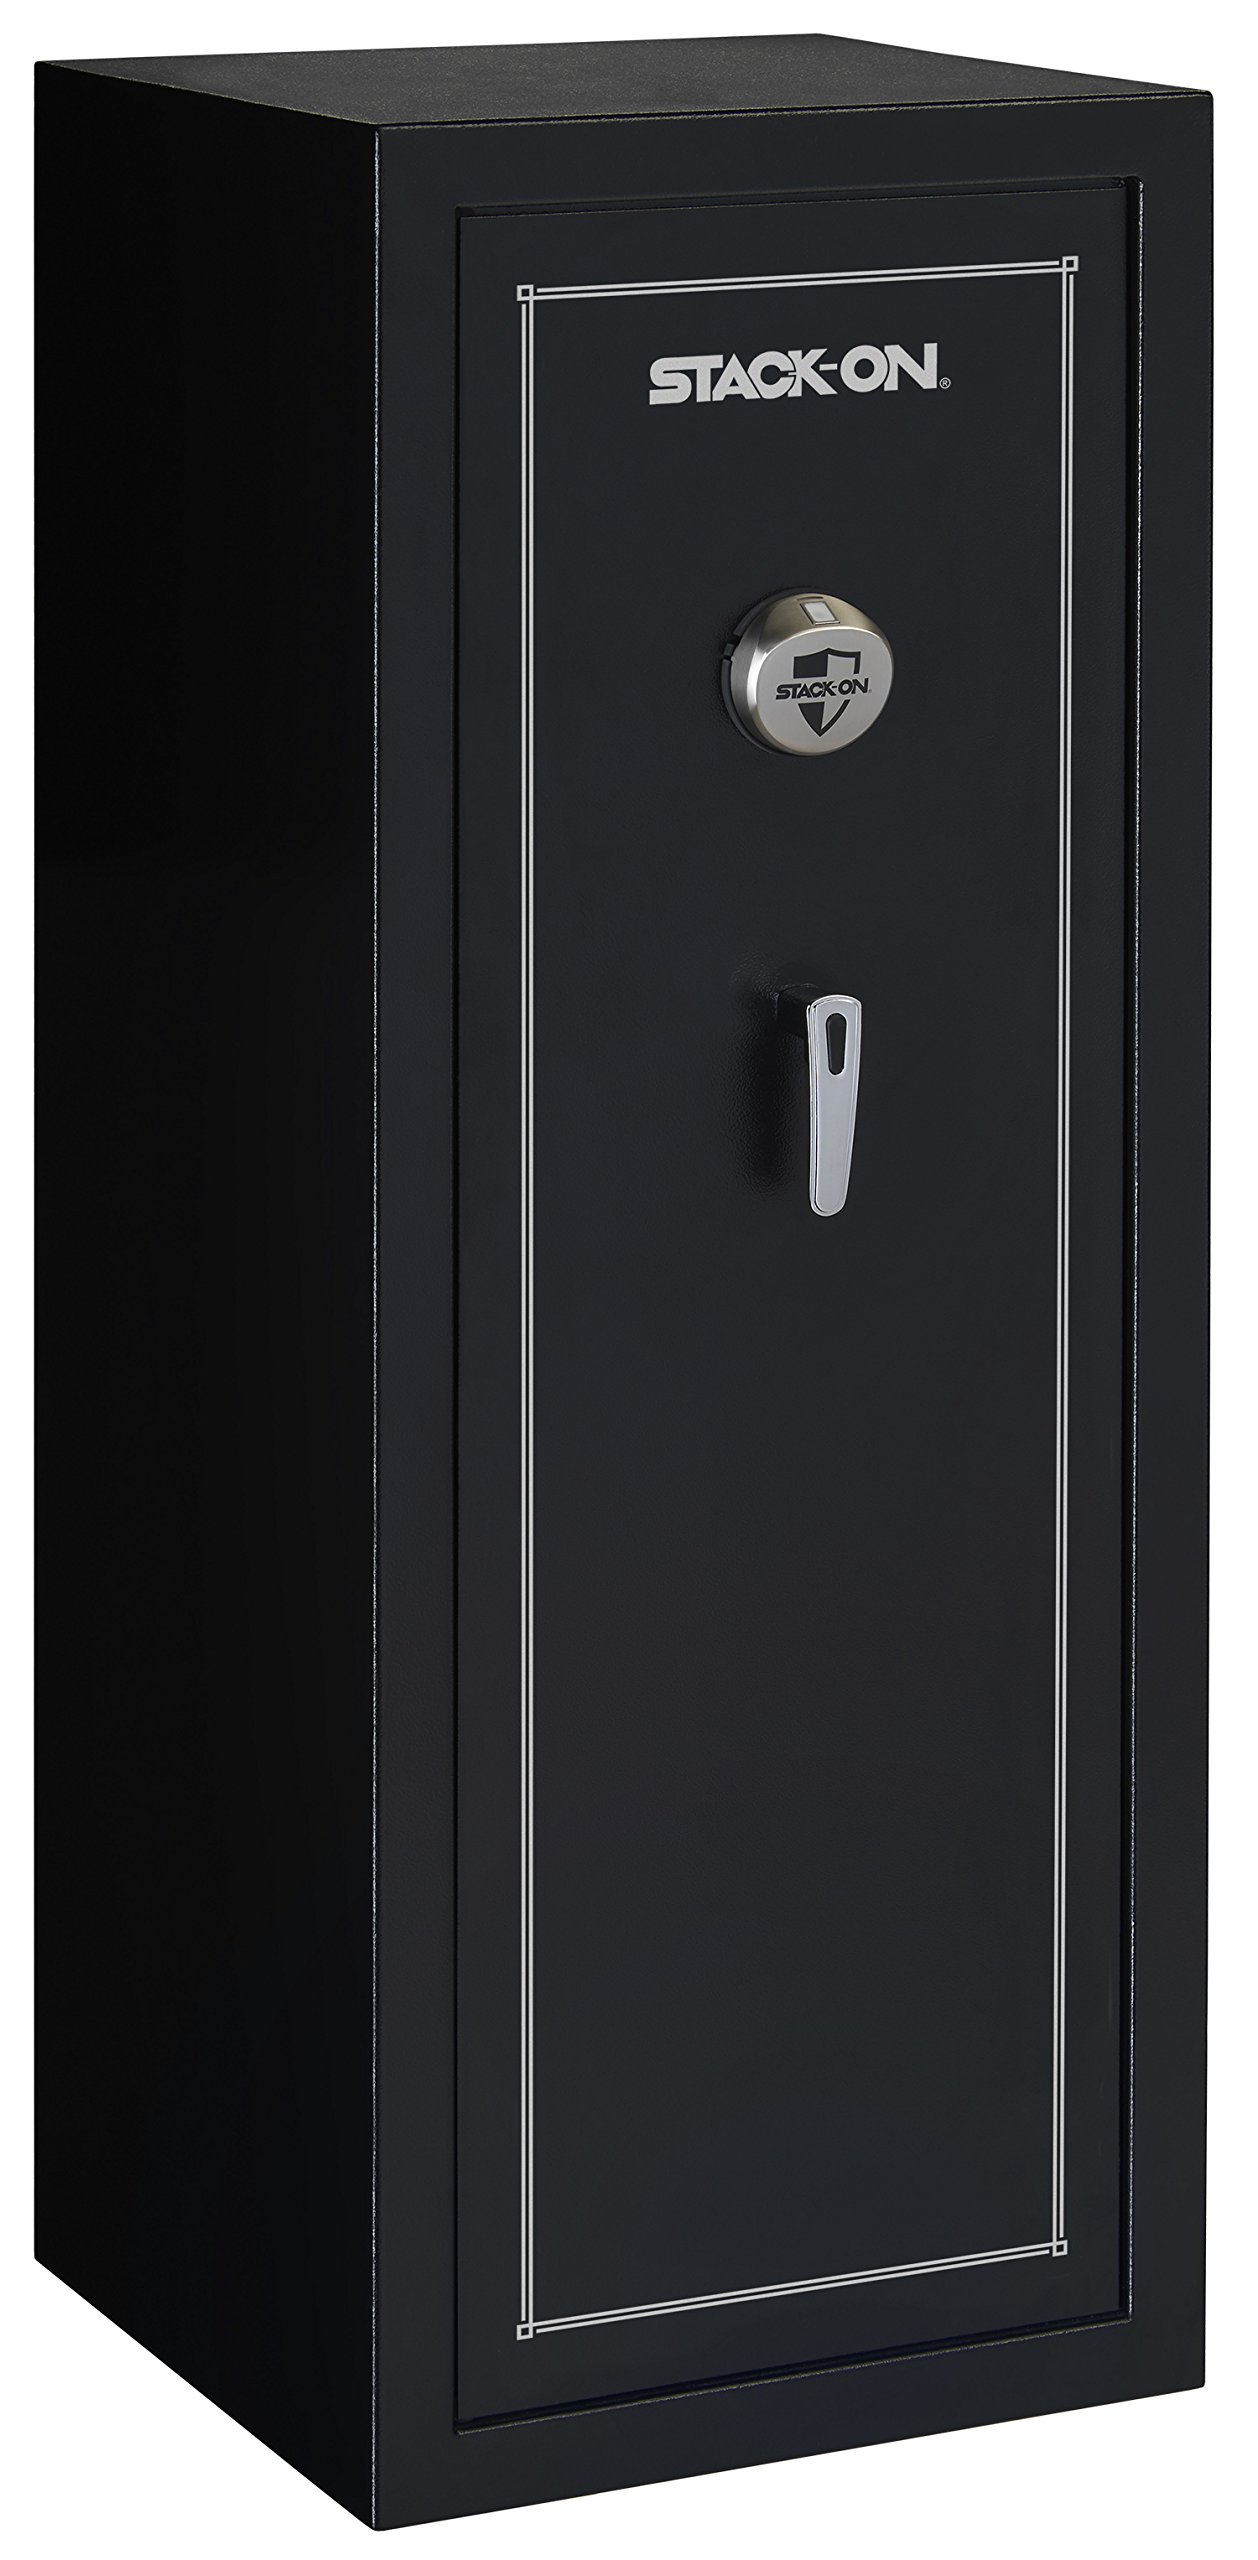 Stack-On SS-16-MB-B 16-Gun Security Safe with Biometric Lock, Matte Black by Stack-On